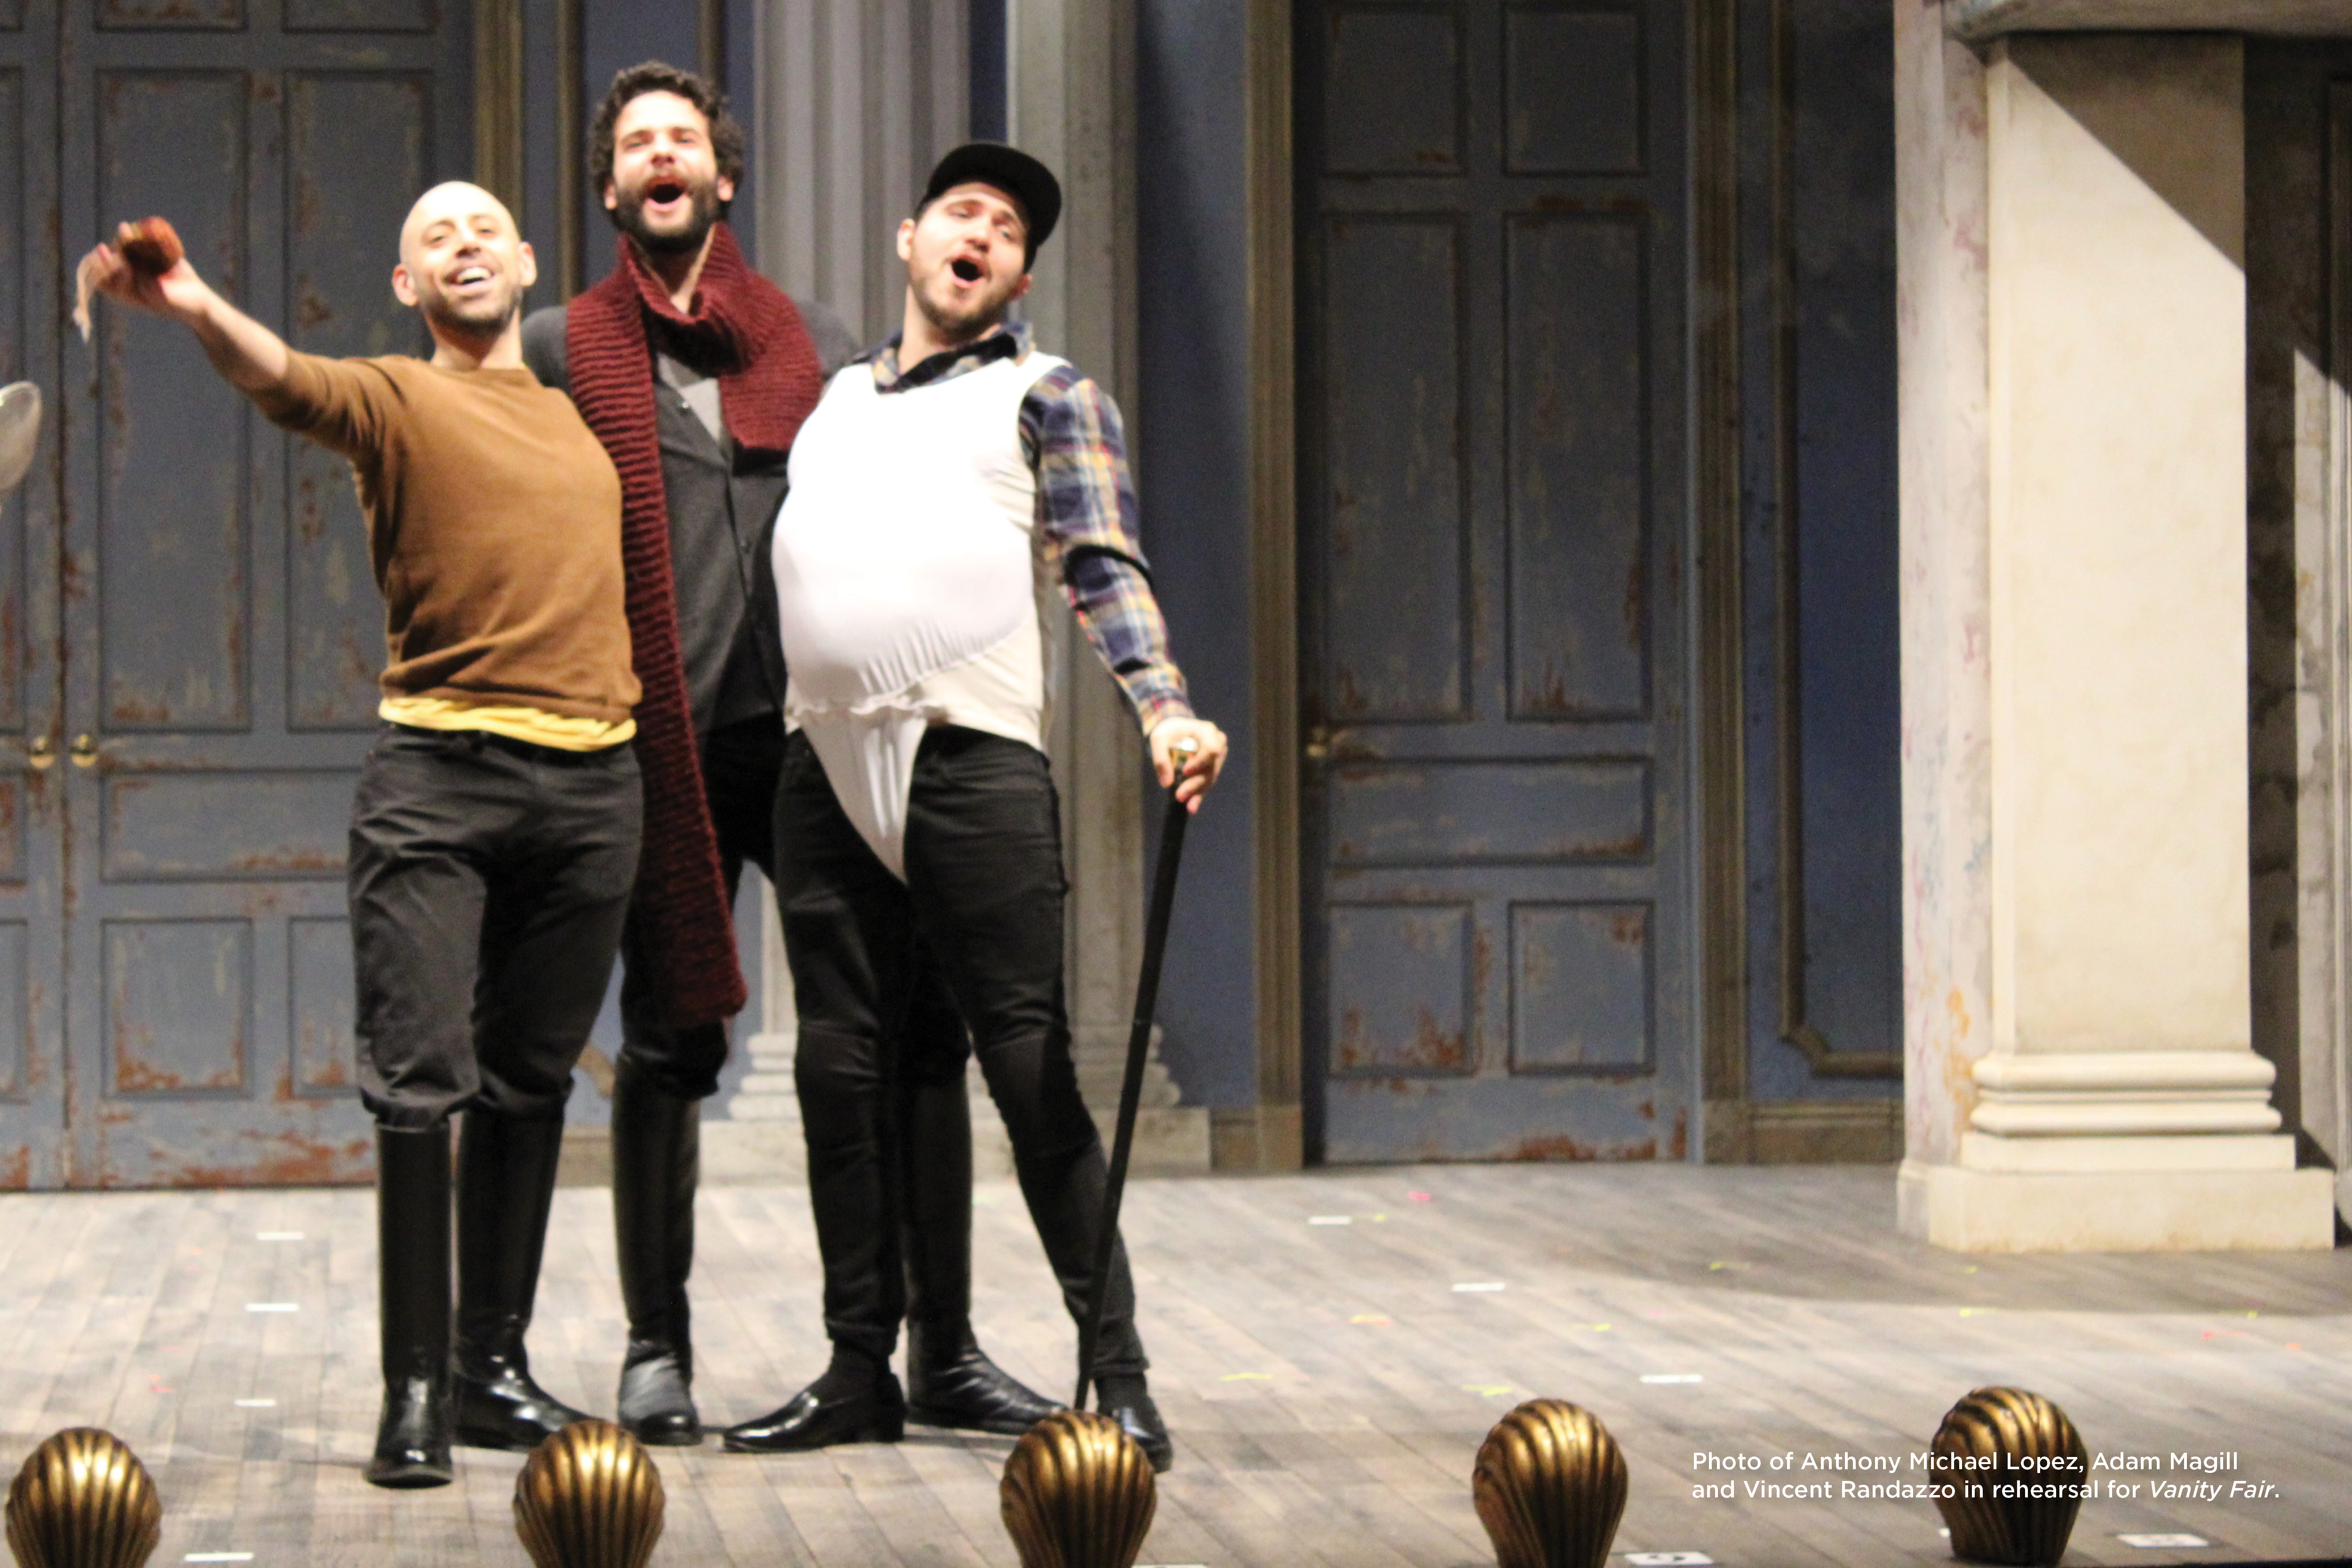 Photo of Anthony Michael Lopez, Adam Magill and Vincent Randazzo in rehearsal for Vanity Fair.